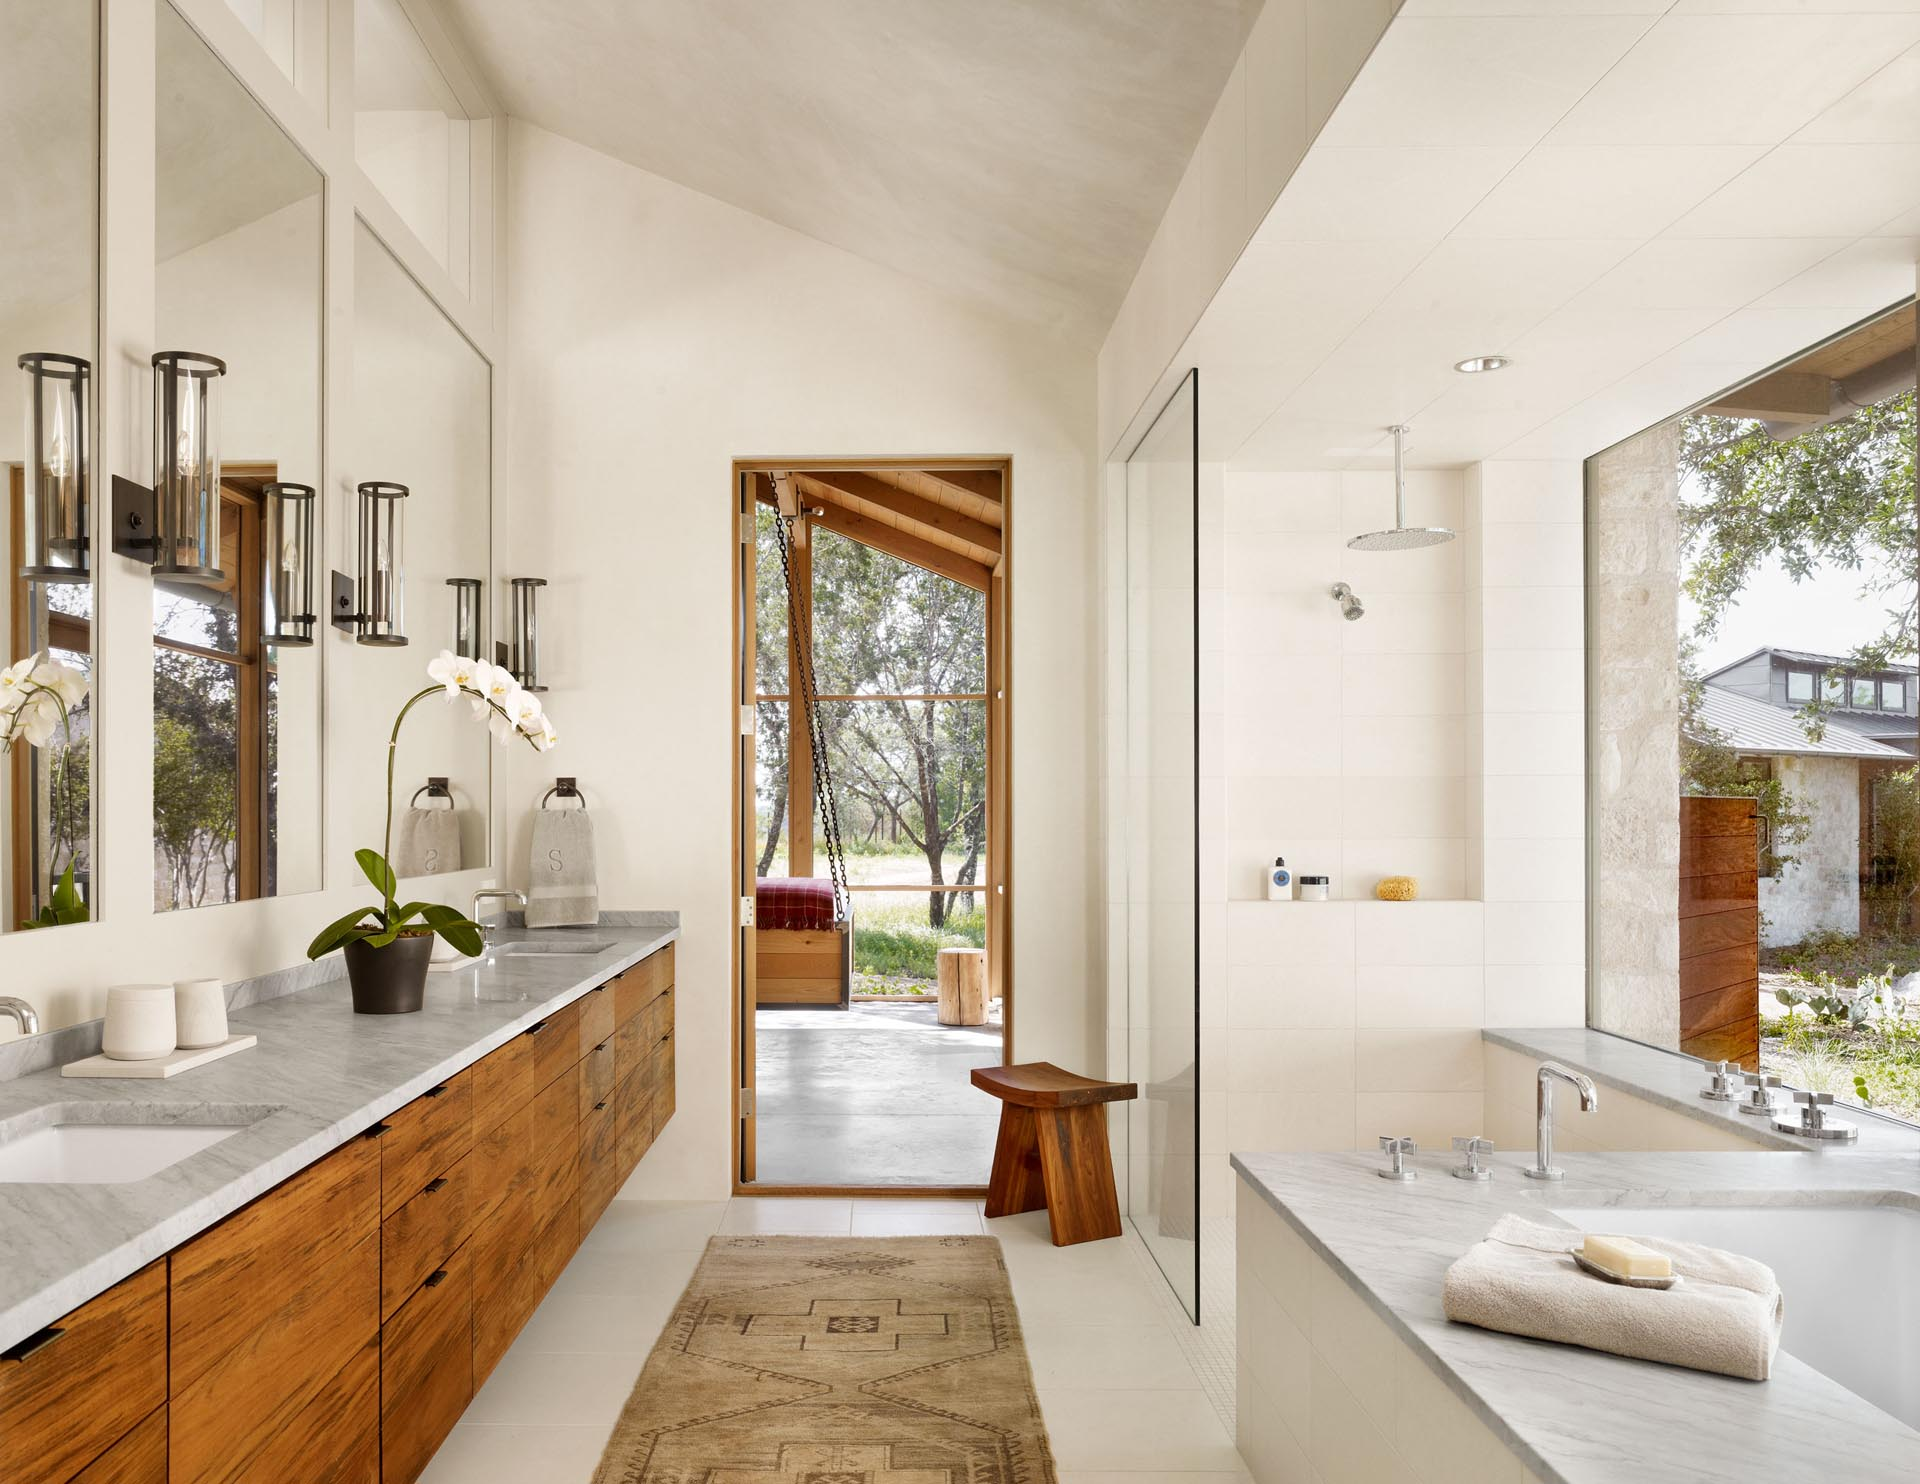 A walk-through bathroom includes a wood vanity that runs the length of the wall, as well as a built-in bathtub and a walk-in shower with an oversized shelving niche.